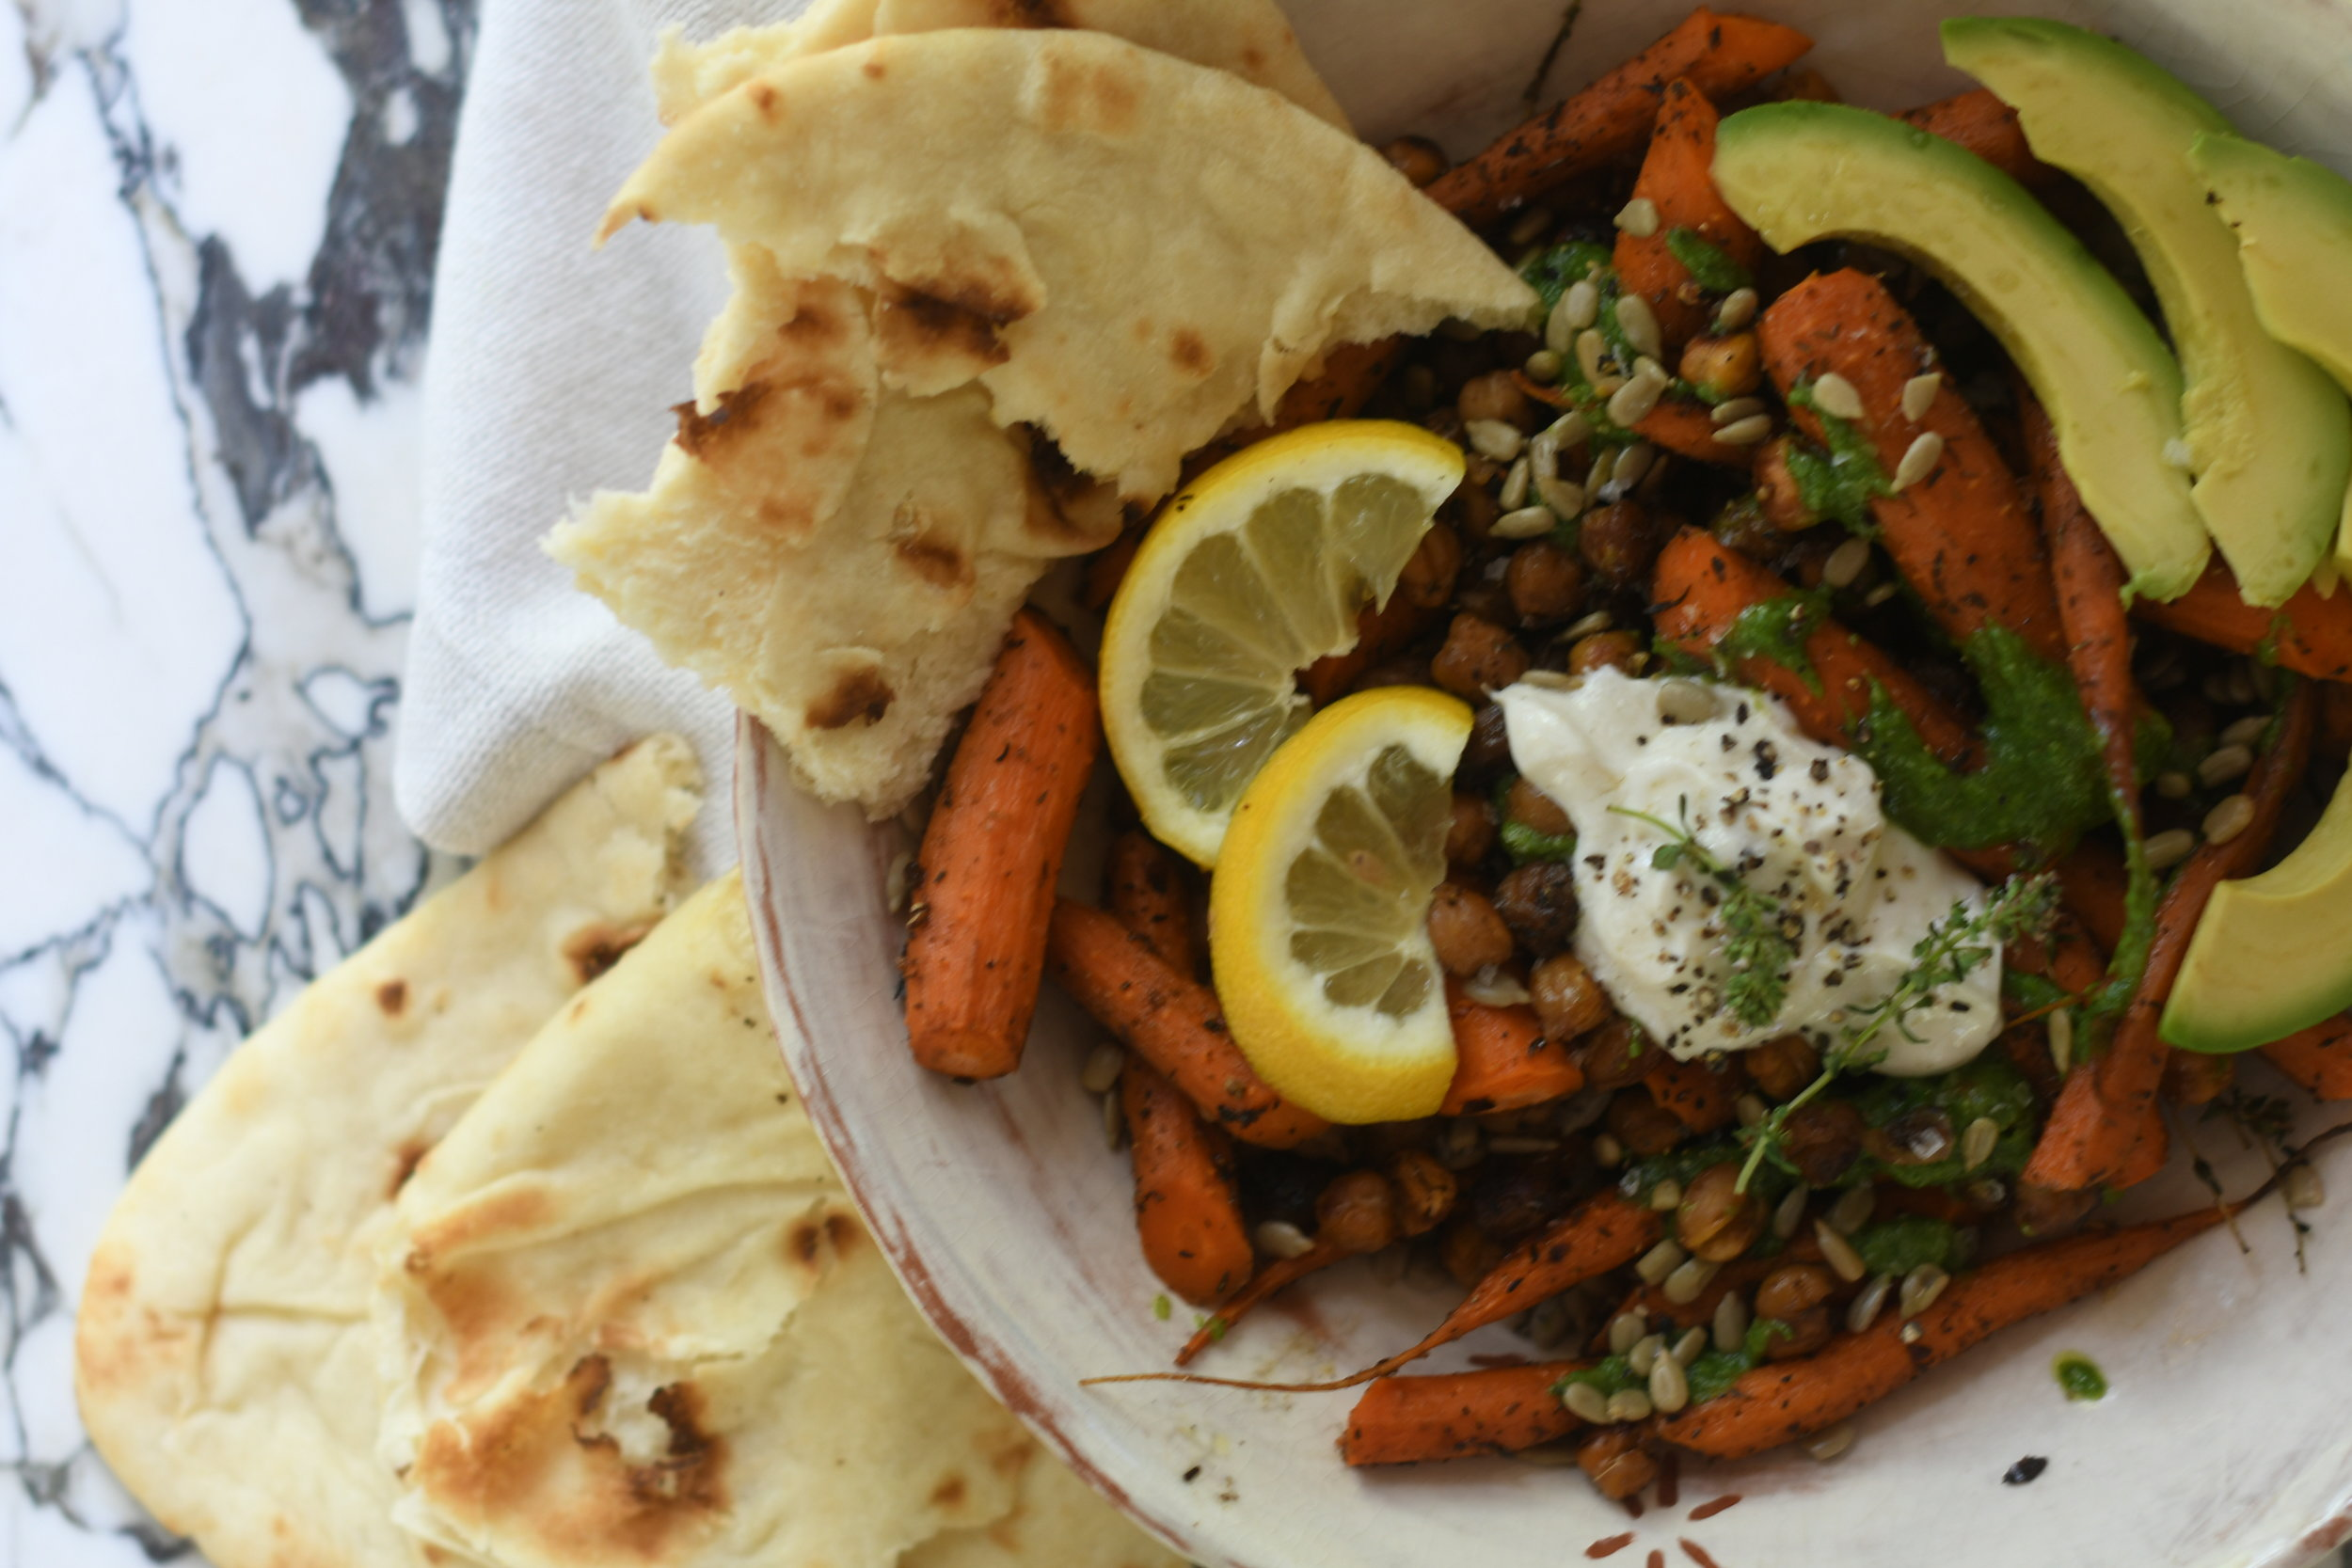 Roasted Carrot Salad with Chickpeas and Avocado